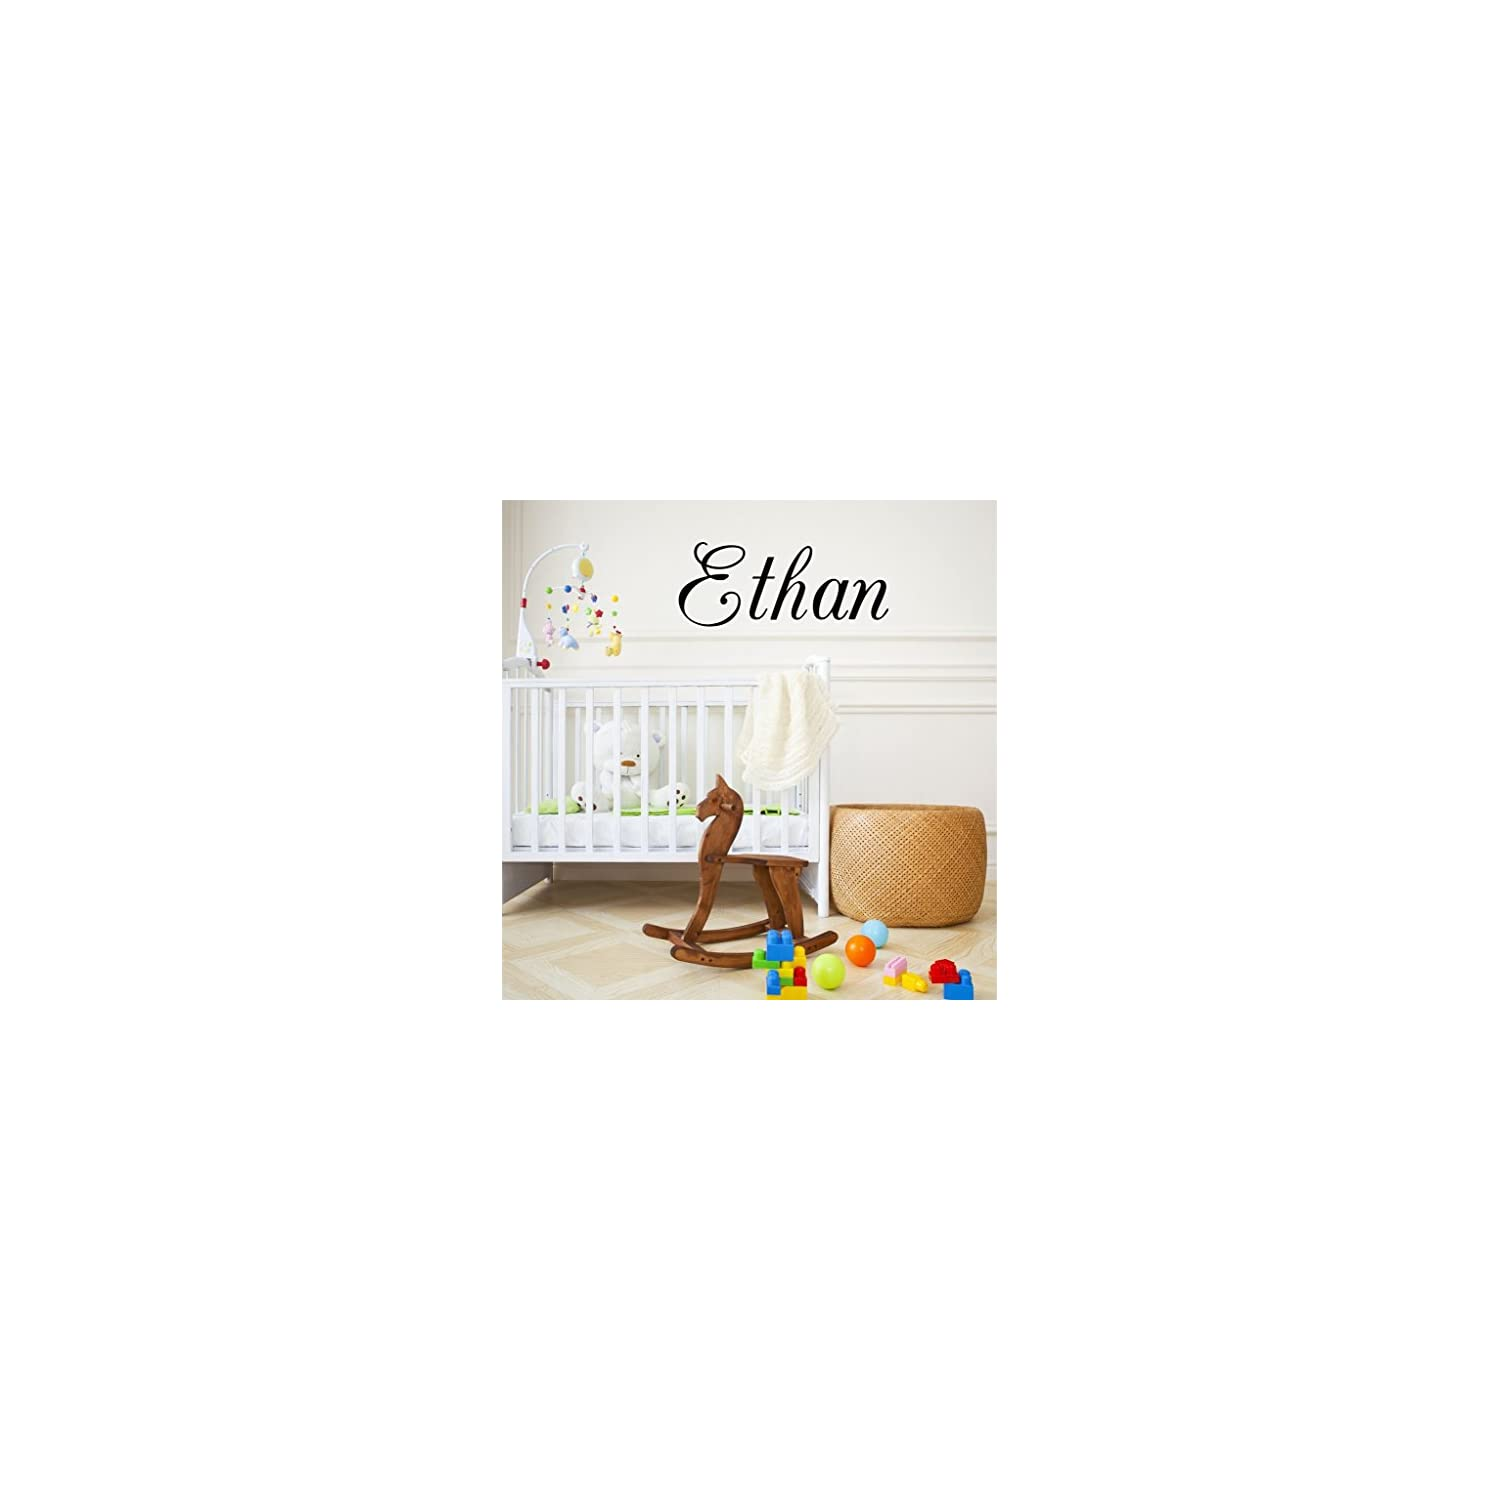 Boys Nursery Personalized Custom Name Vinyl Wall Art Decal Sticker 28″ W, Boy Name Decal, Boys Name, Nursery Name, Boys Name Decor Wall Decals, Boy's Bedroom Decor, Plus Free 12″ Hello Door Decal